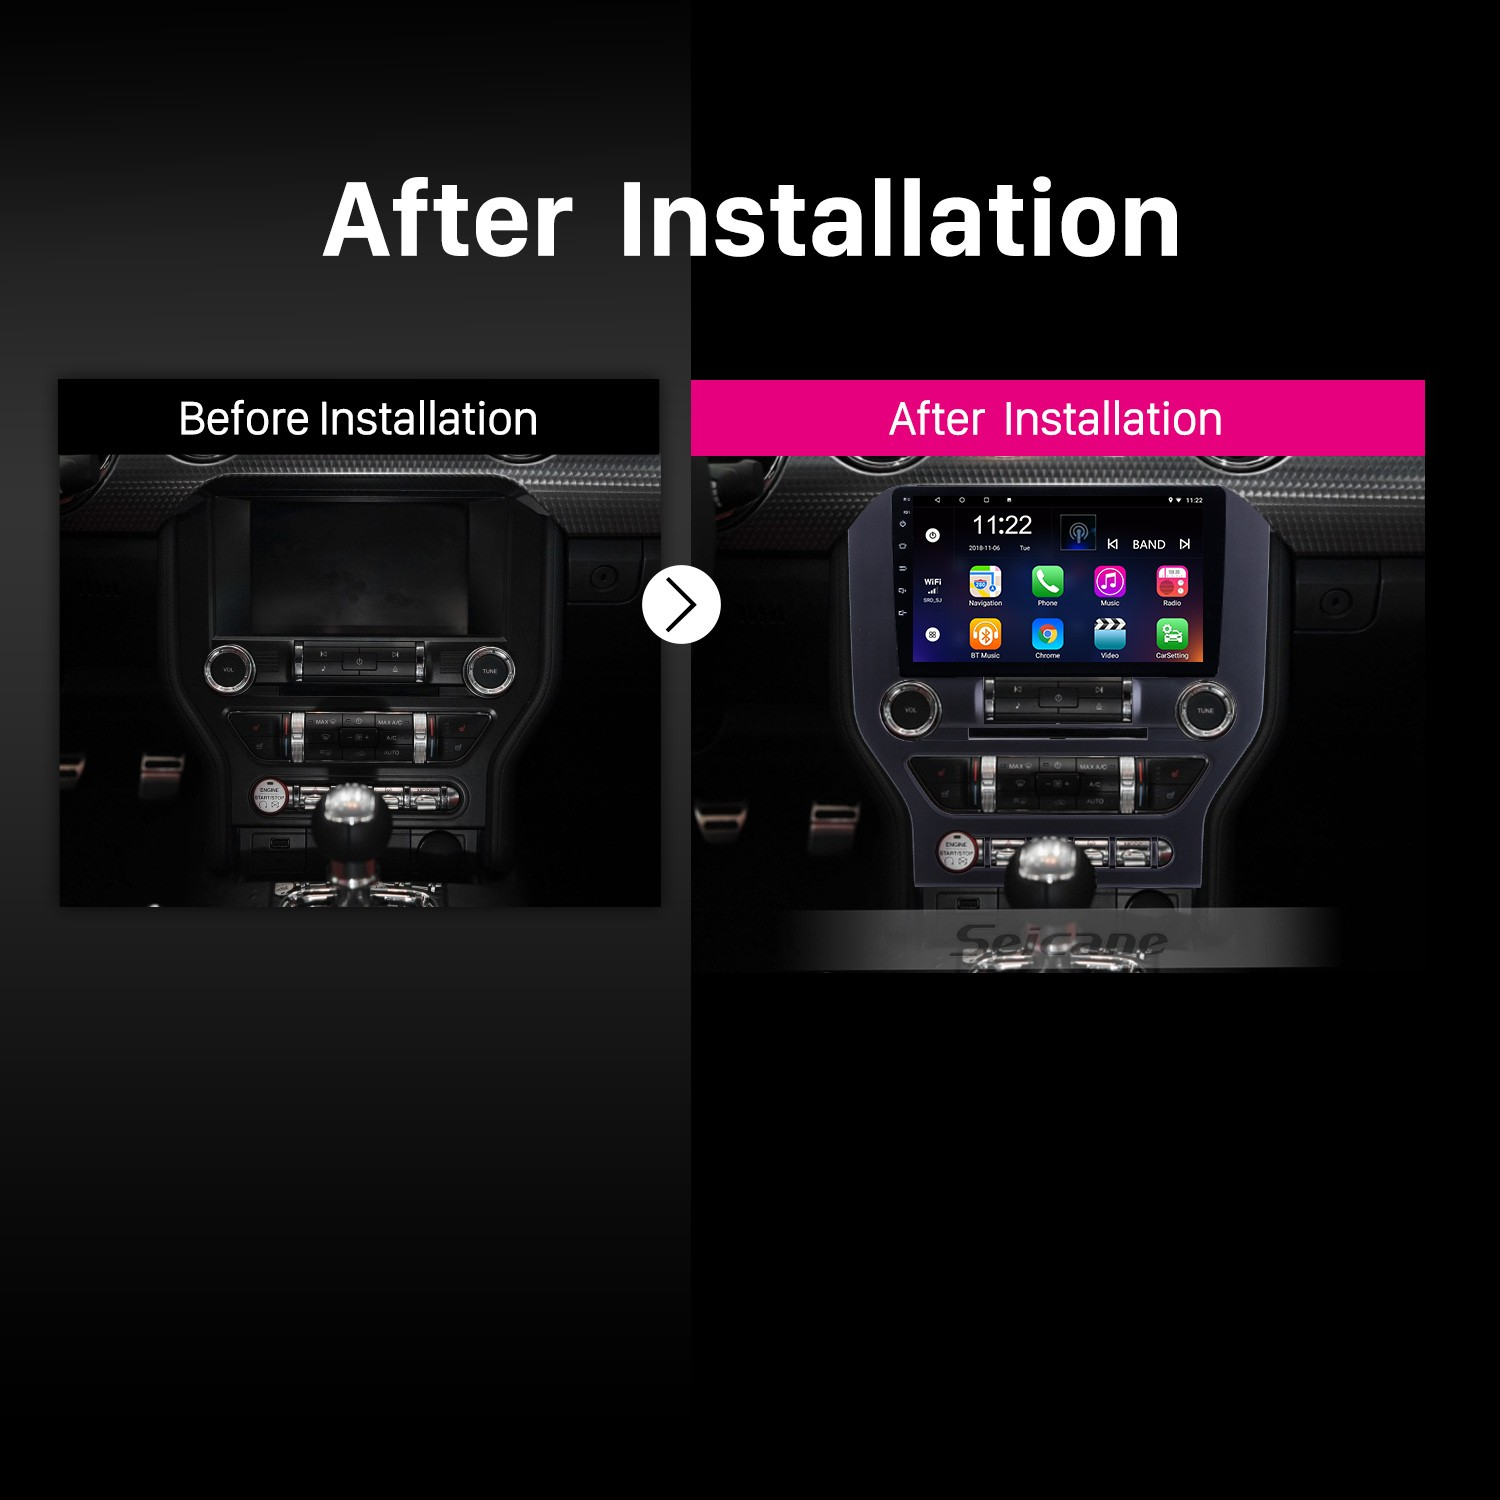 span-2015-ford-mustang-gps-navigation-car-stereo-with-android-hd-touch-screen-span-8.jpg